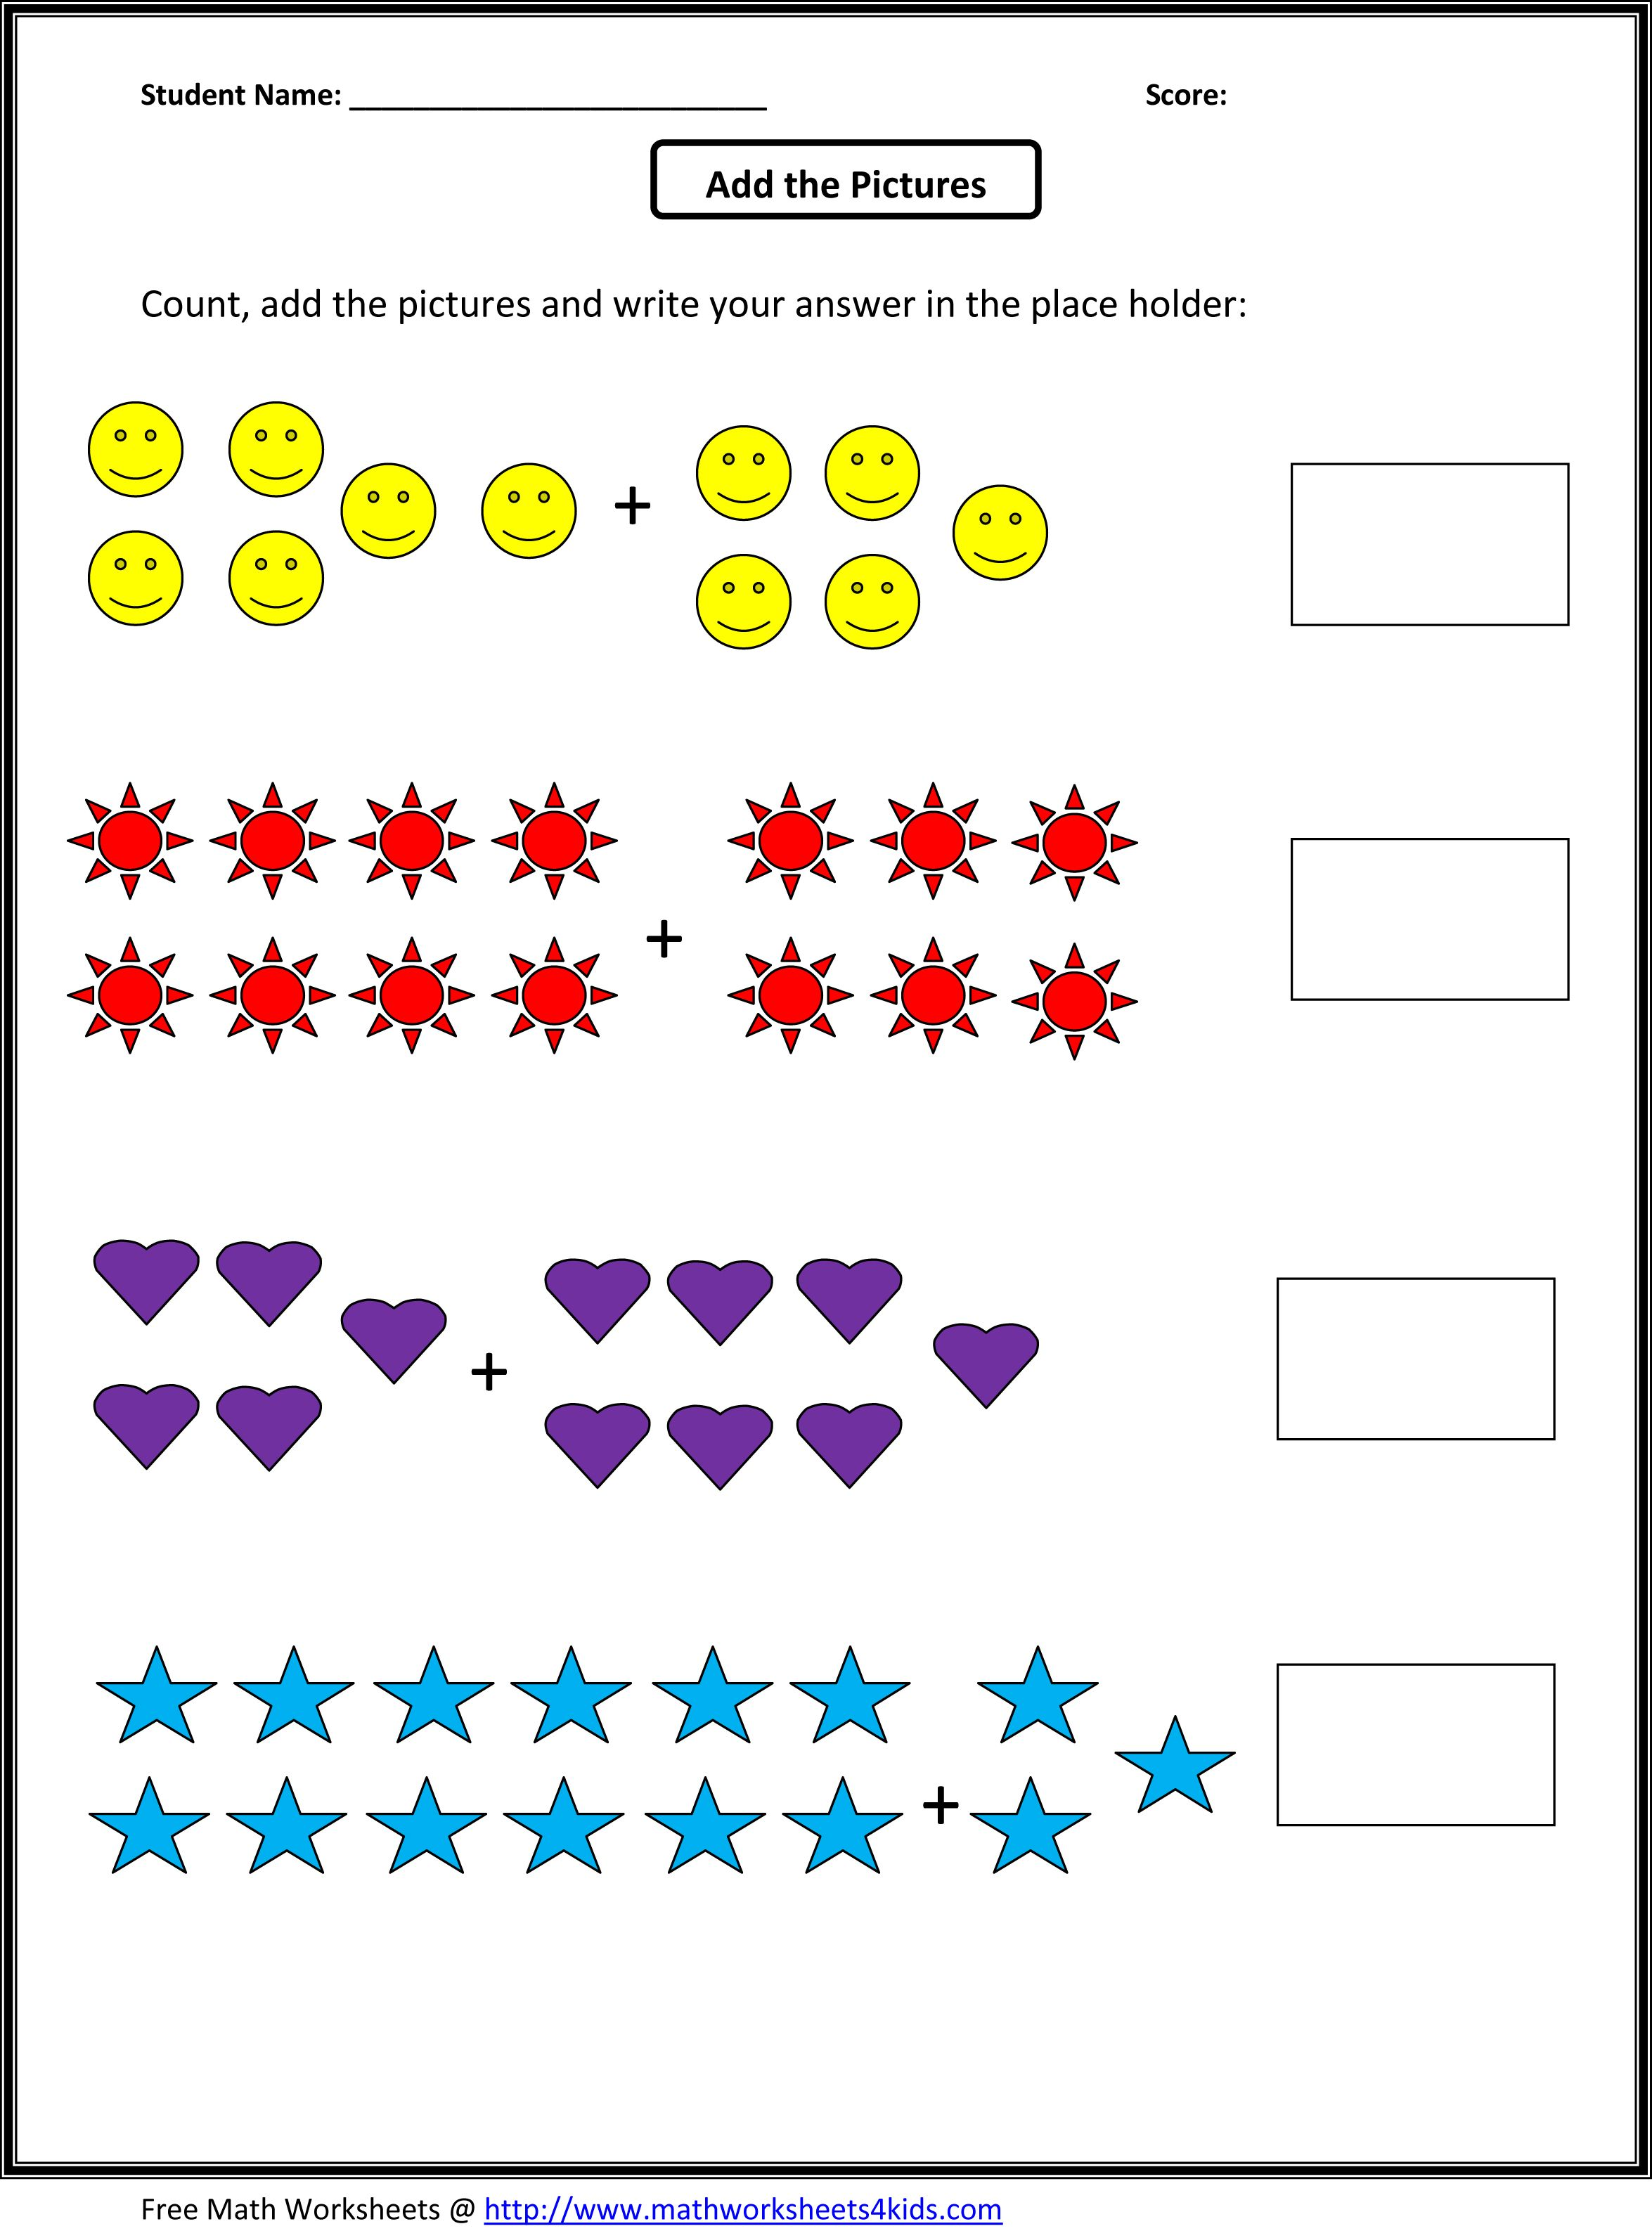 Uncategorized Math Worksheet For 1st Grade grade 1 addition math worksheets first worksheets